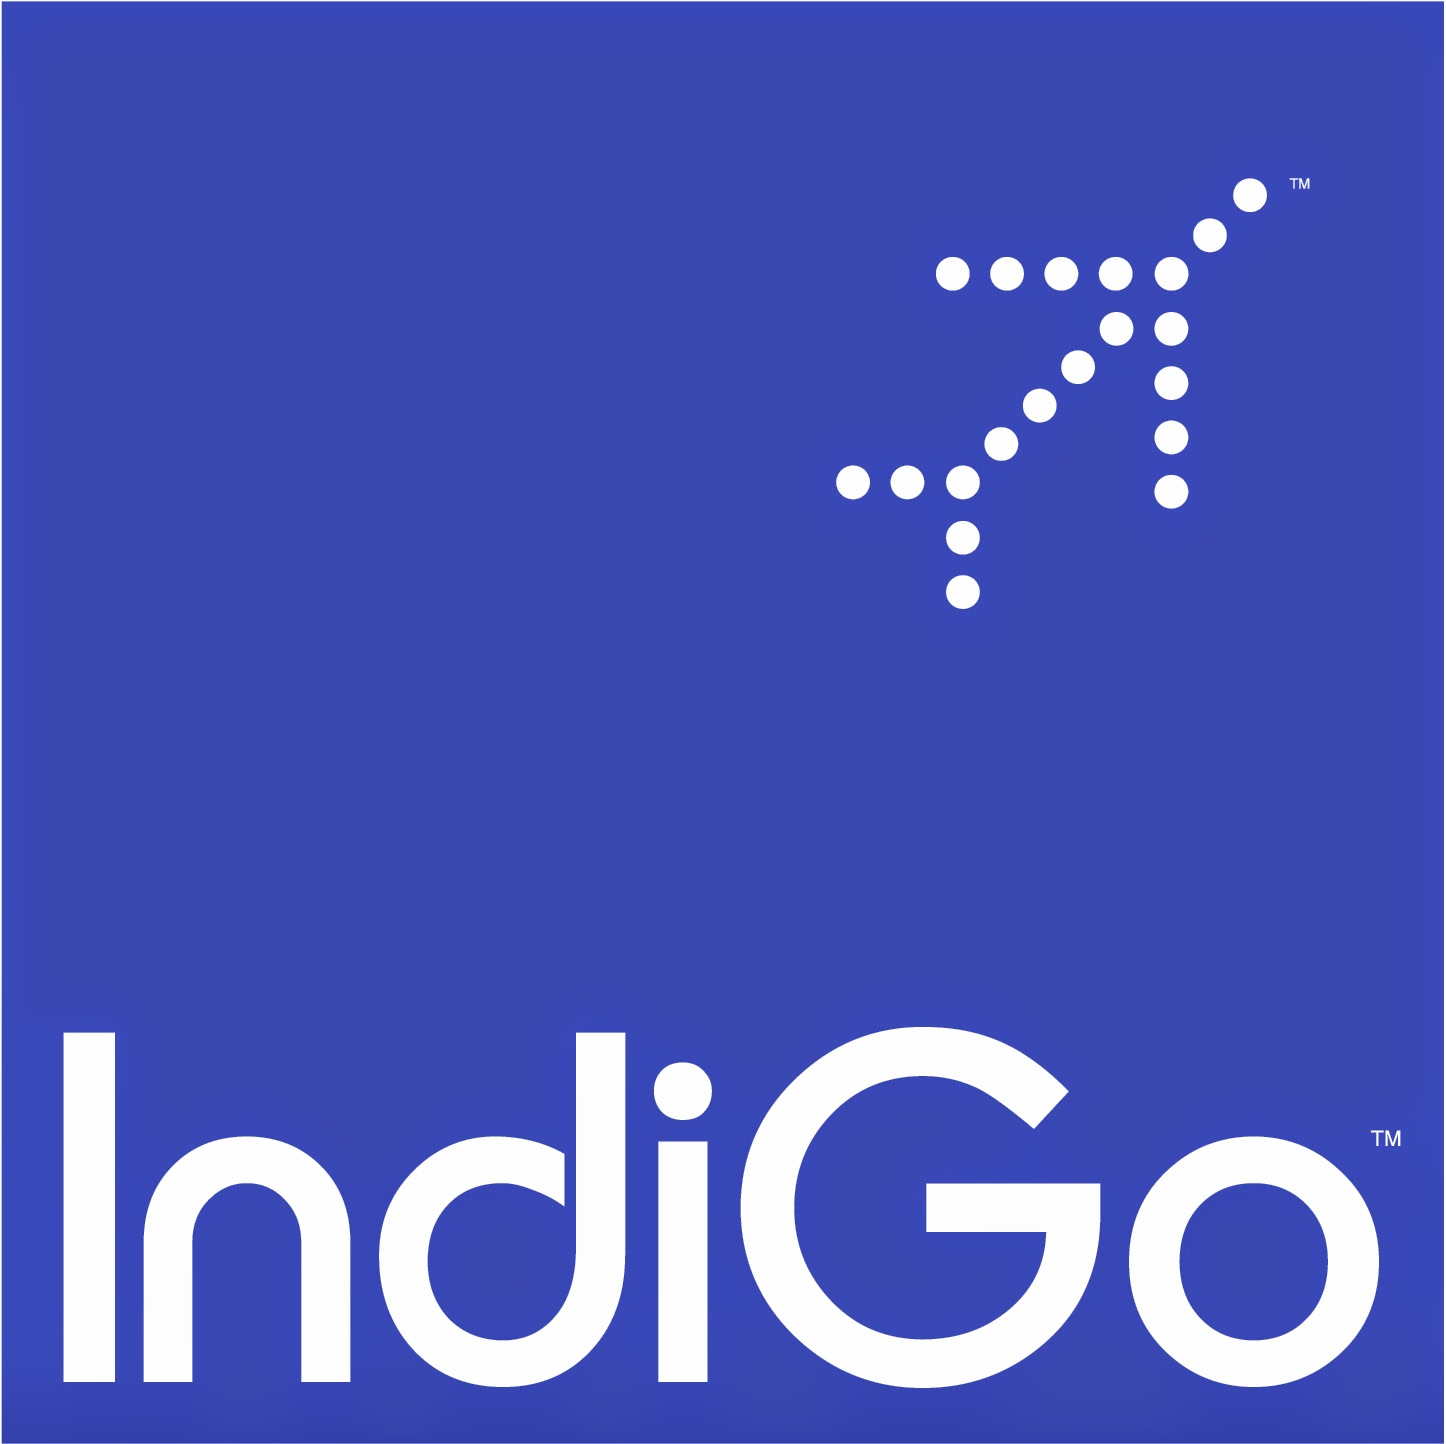 Indigo Airline Swot Analysis